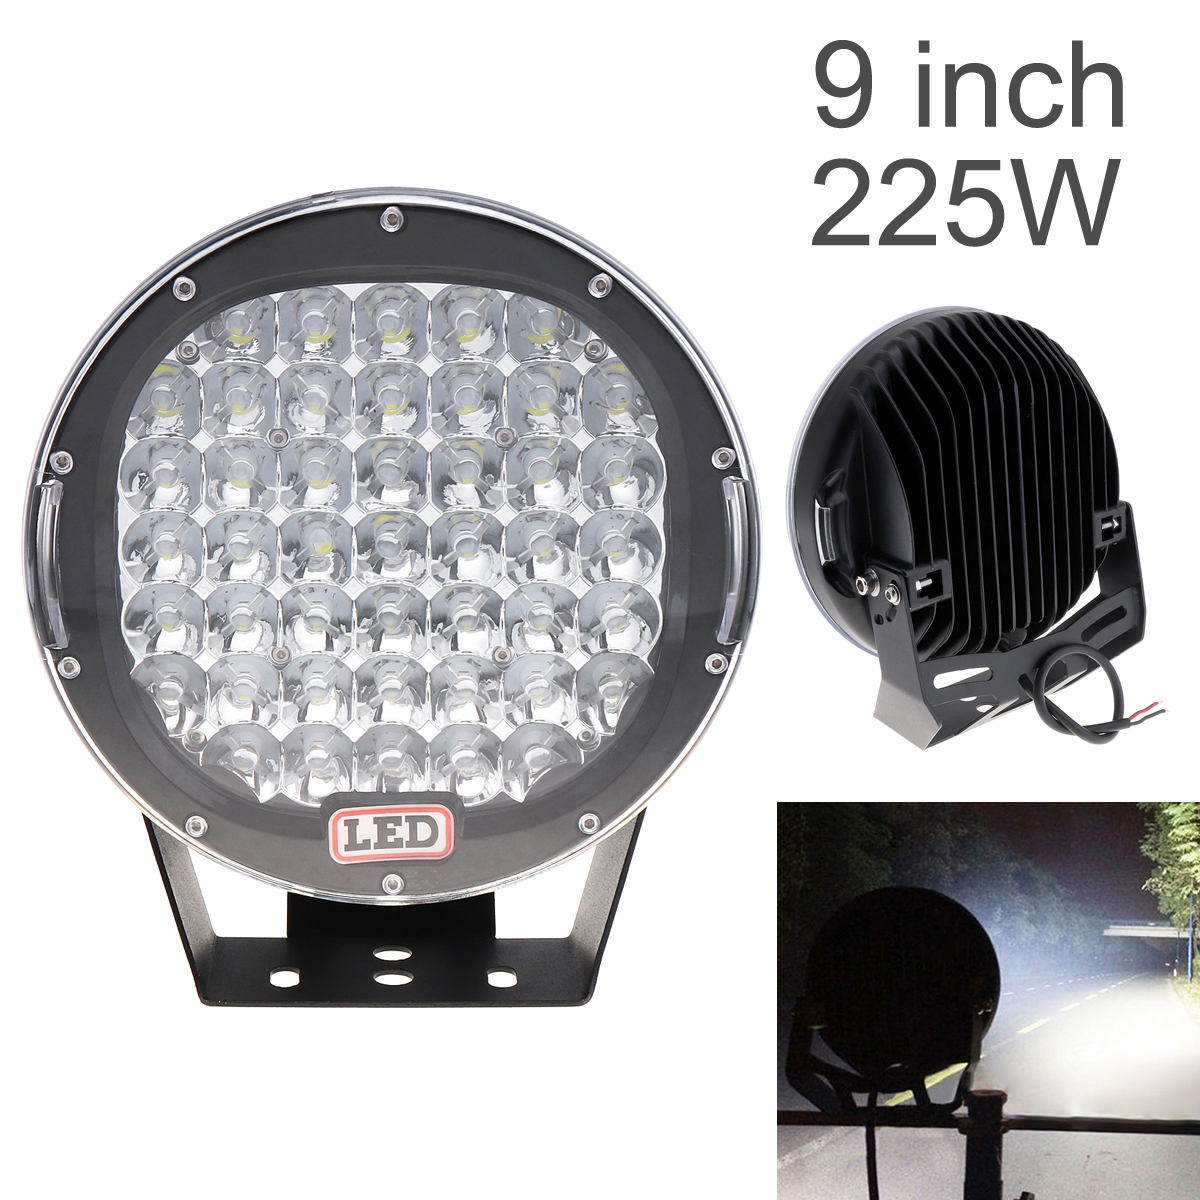 9 Inch Rounded 225W 45x LED Car Worklight Spot / Flood Light Vehicle Headlight Driving Lights for Offroad SUV ATV Truck Boat guleek 60w type h 4200lm 6000k 6 led white flood spot light worklight bar for car boat